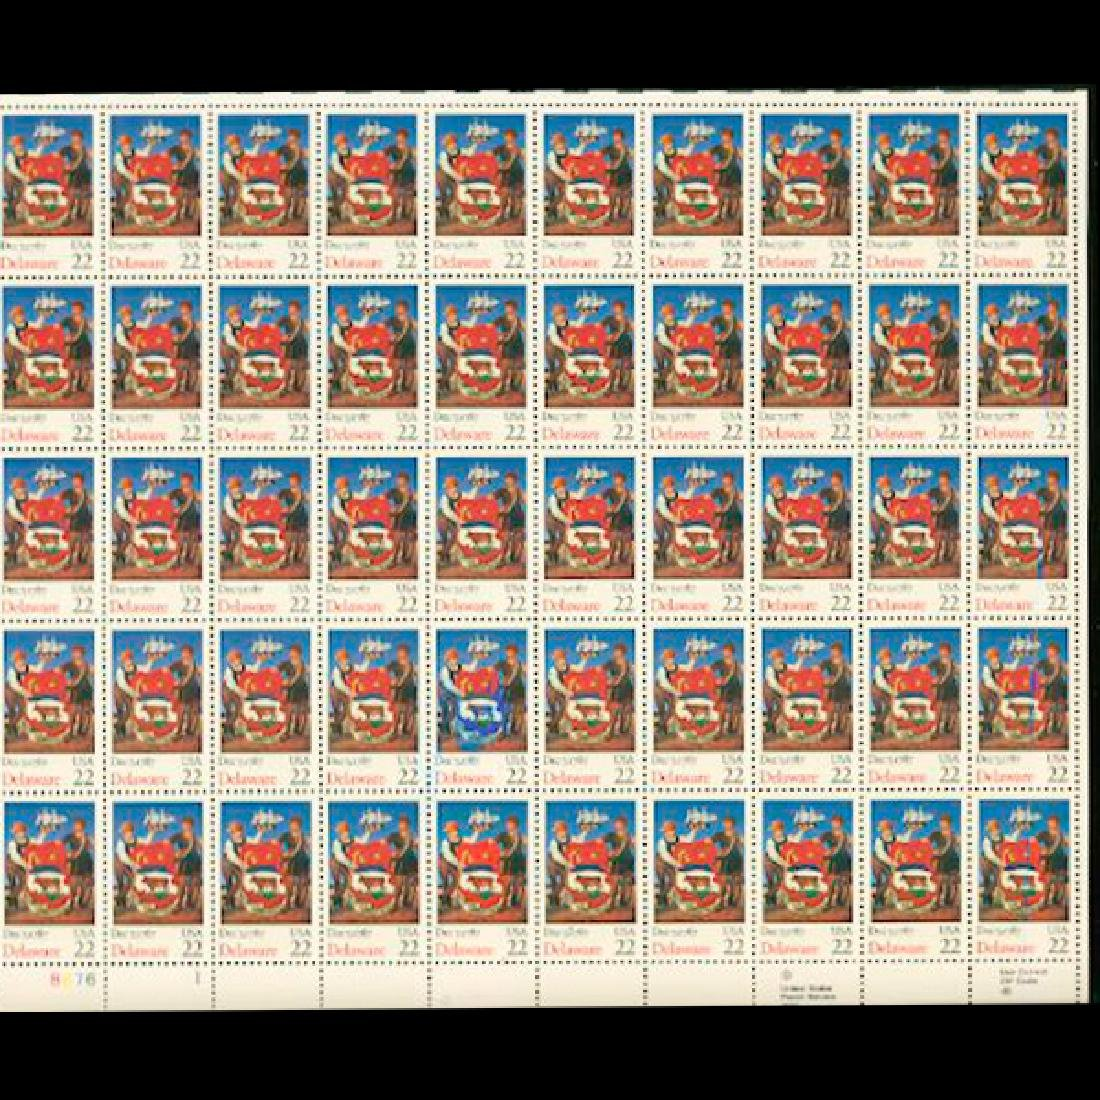 1987 US Sheet 22c Delaware Stamps MNH Scarce